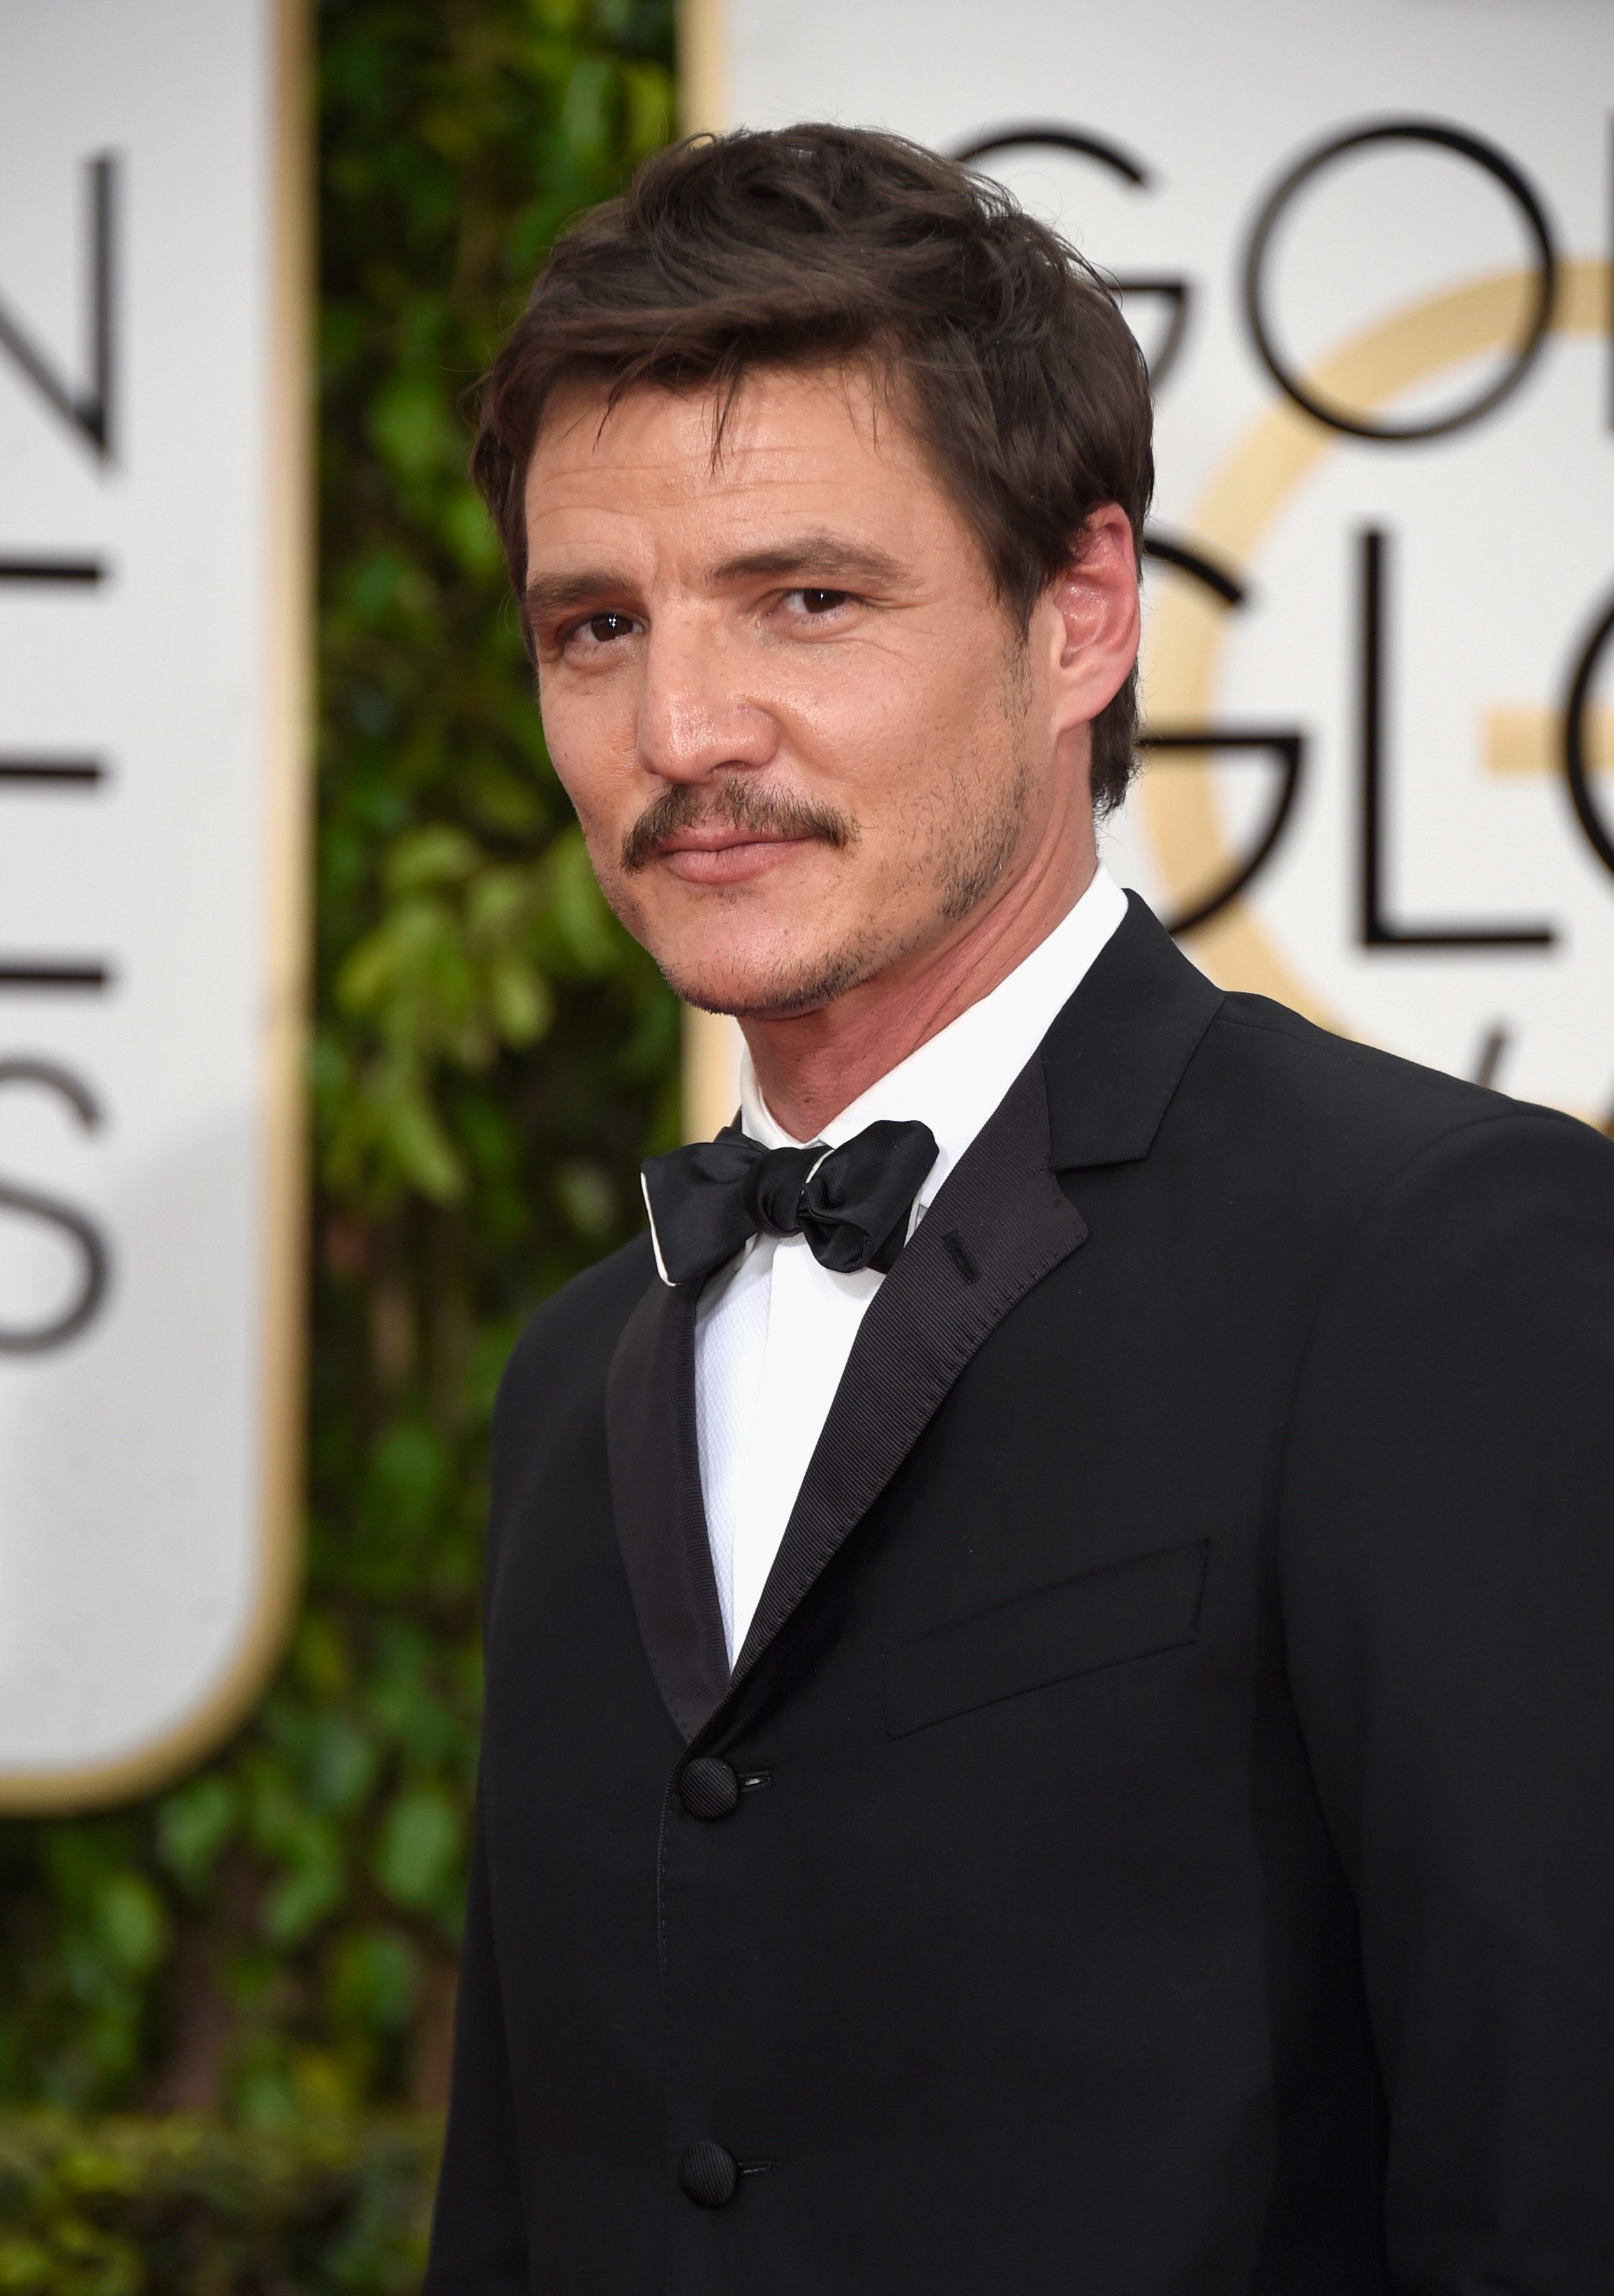 BEVERLY HILLS, CA - JANUARY 11:  Actor Pedro Pascal attends the 72nd Annual Golden Globe Awards at The Beverly Hilton Hotel on January 11, 2015 in Beverly Hills, California.  (Photo by Frazer Harrison/Getty Images)